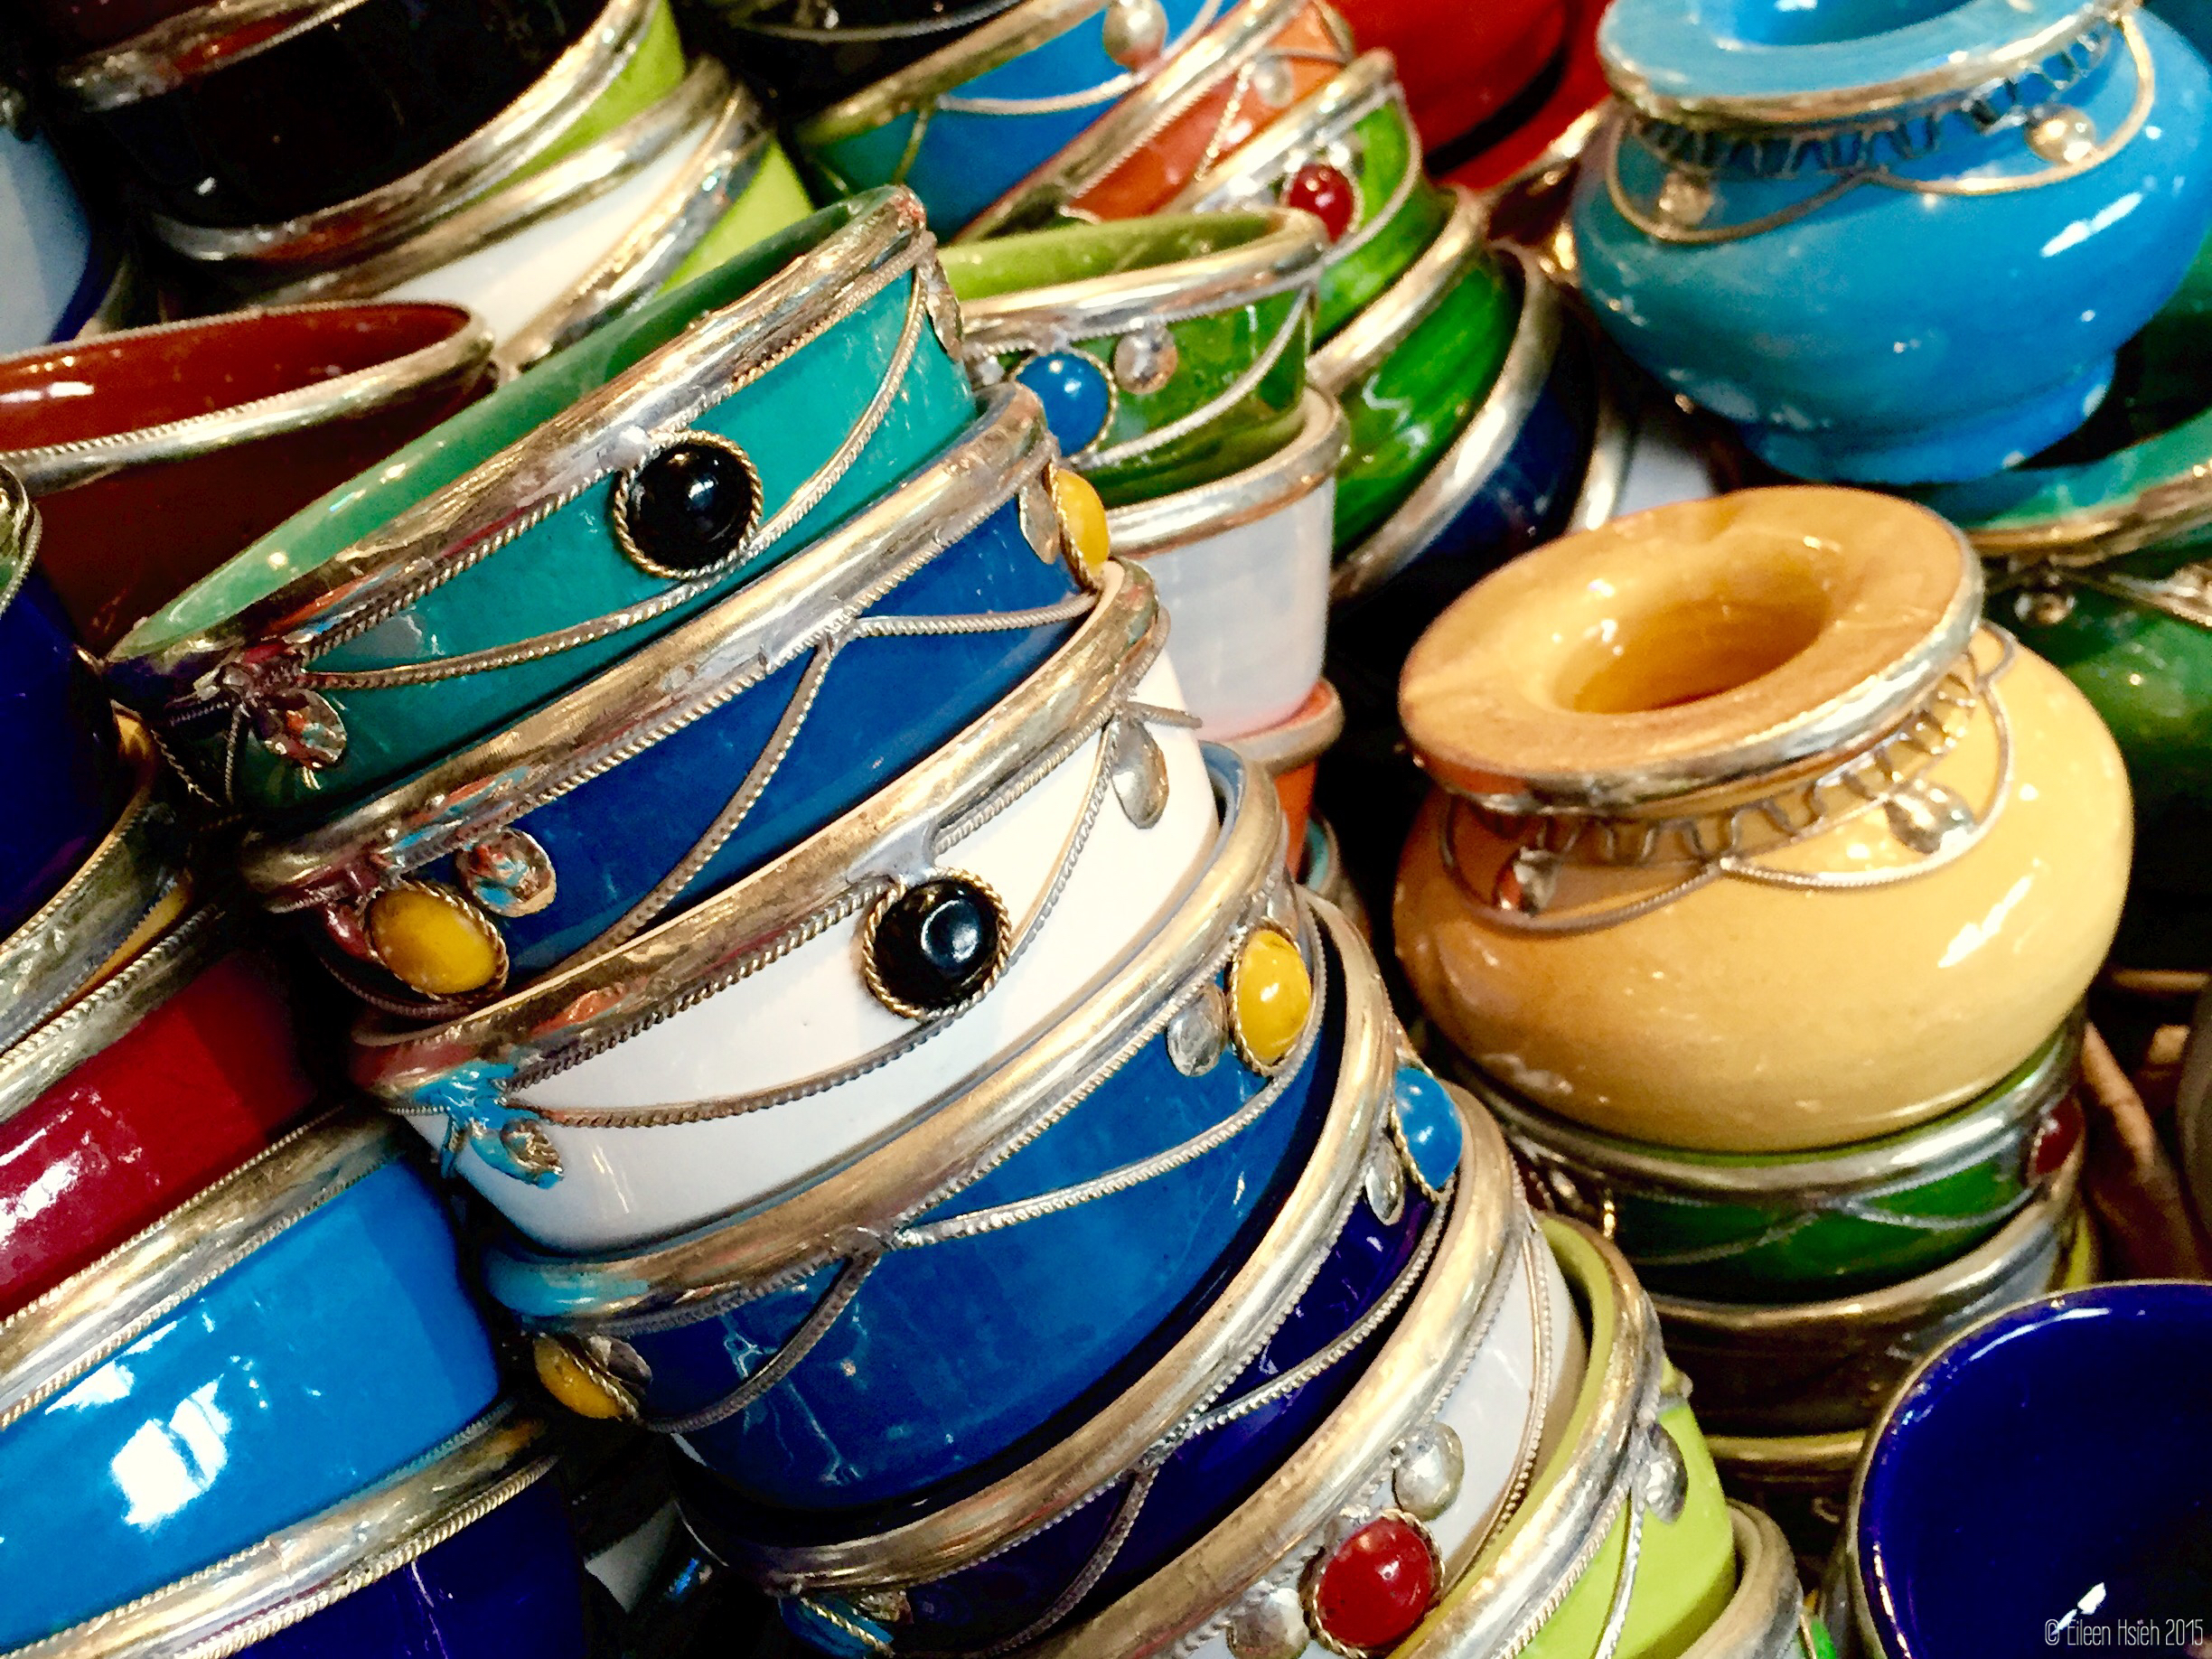 Ornate pottery is sold everywhere in Marrakech and makes a popular and affordable souvenir, starting at just 10 dirham (about 1 euro) per piece.馬拉喀什的市場裡到處可見這些漂亮花俏的盤碗,每樣只要10DH (約ㄧ歐元)起。